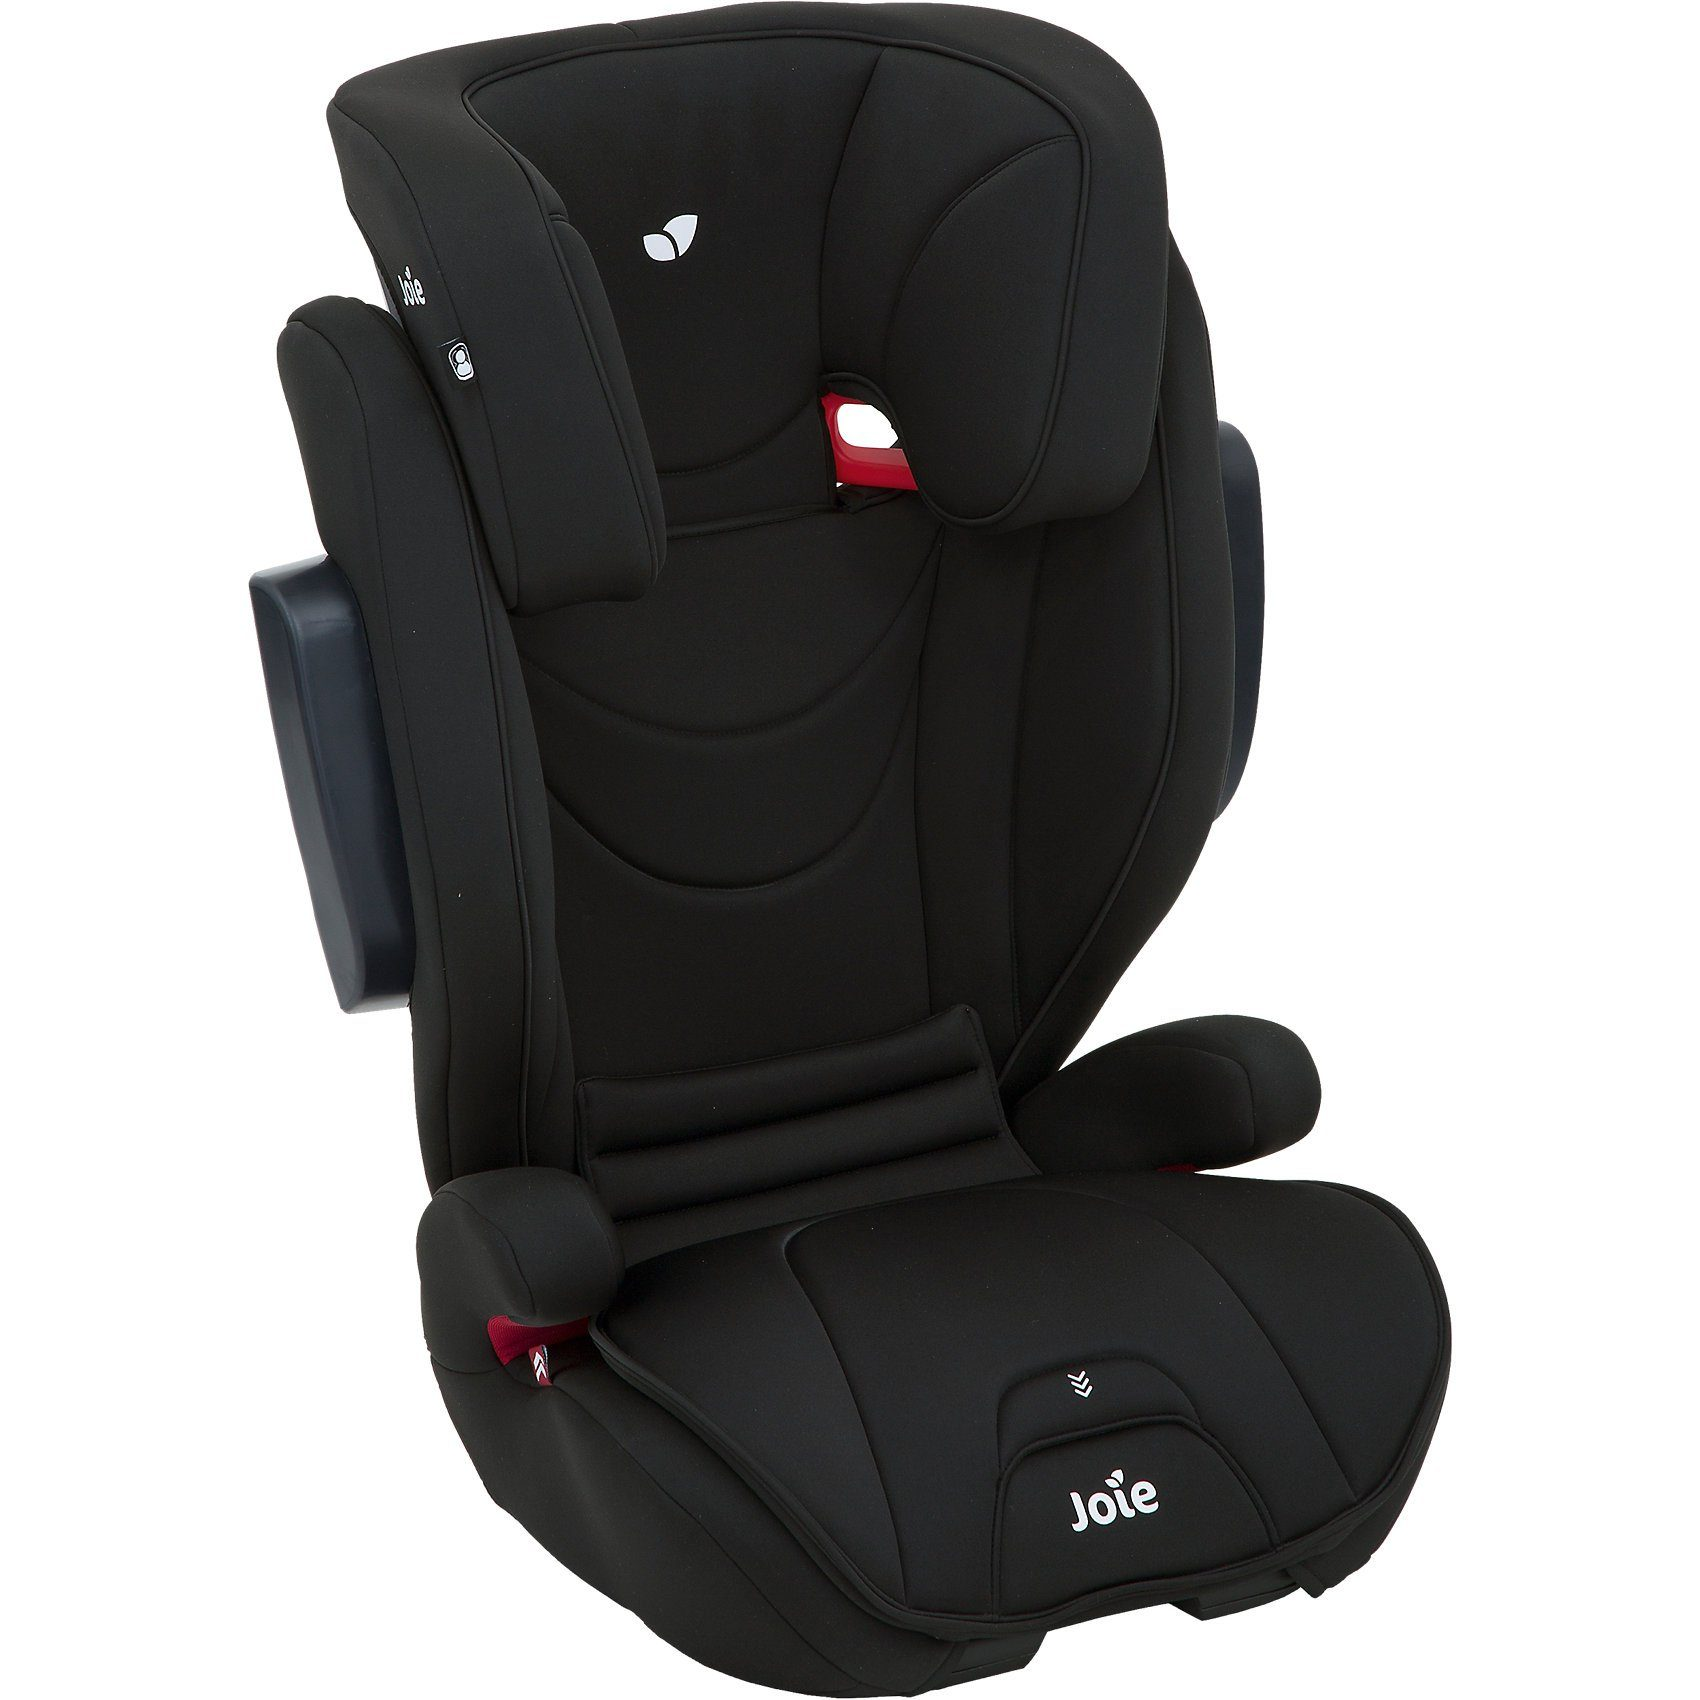 Joie Auto-Kindersitz Traver, Coal